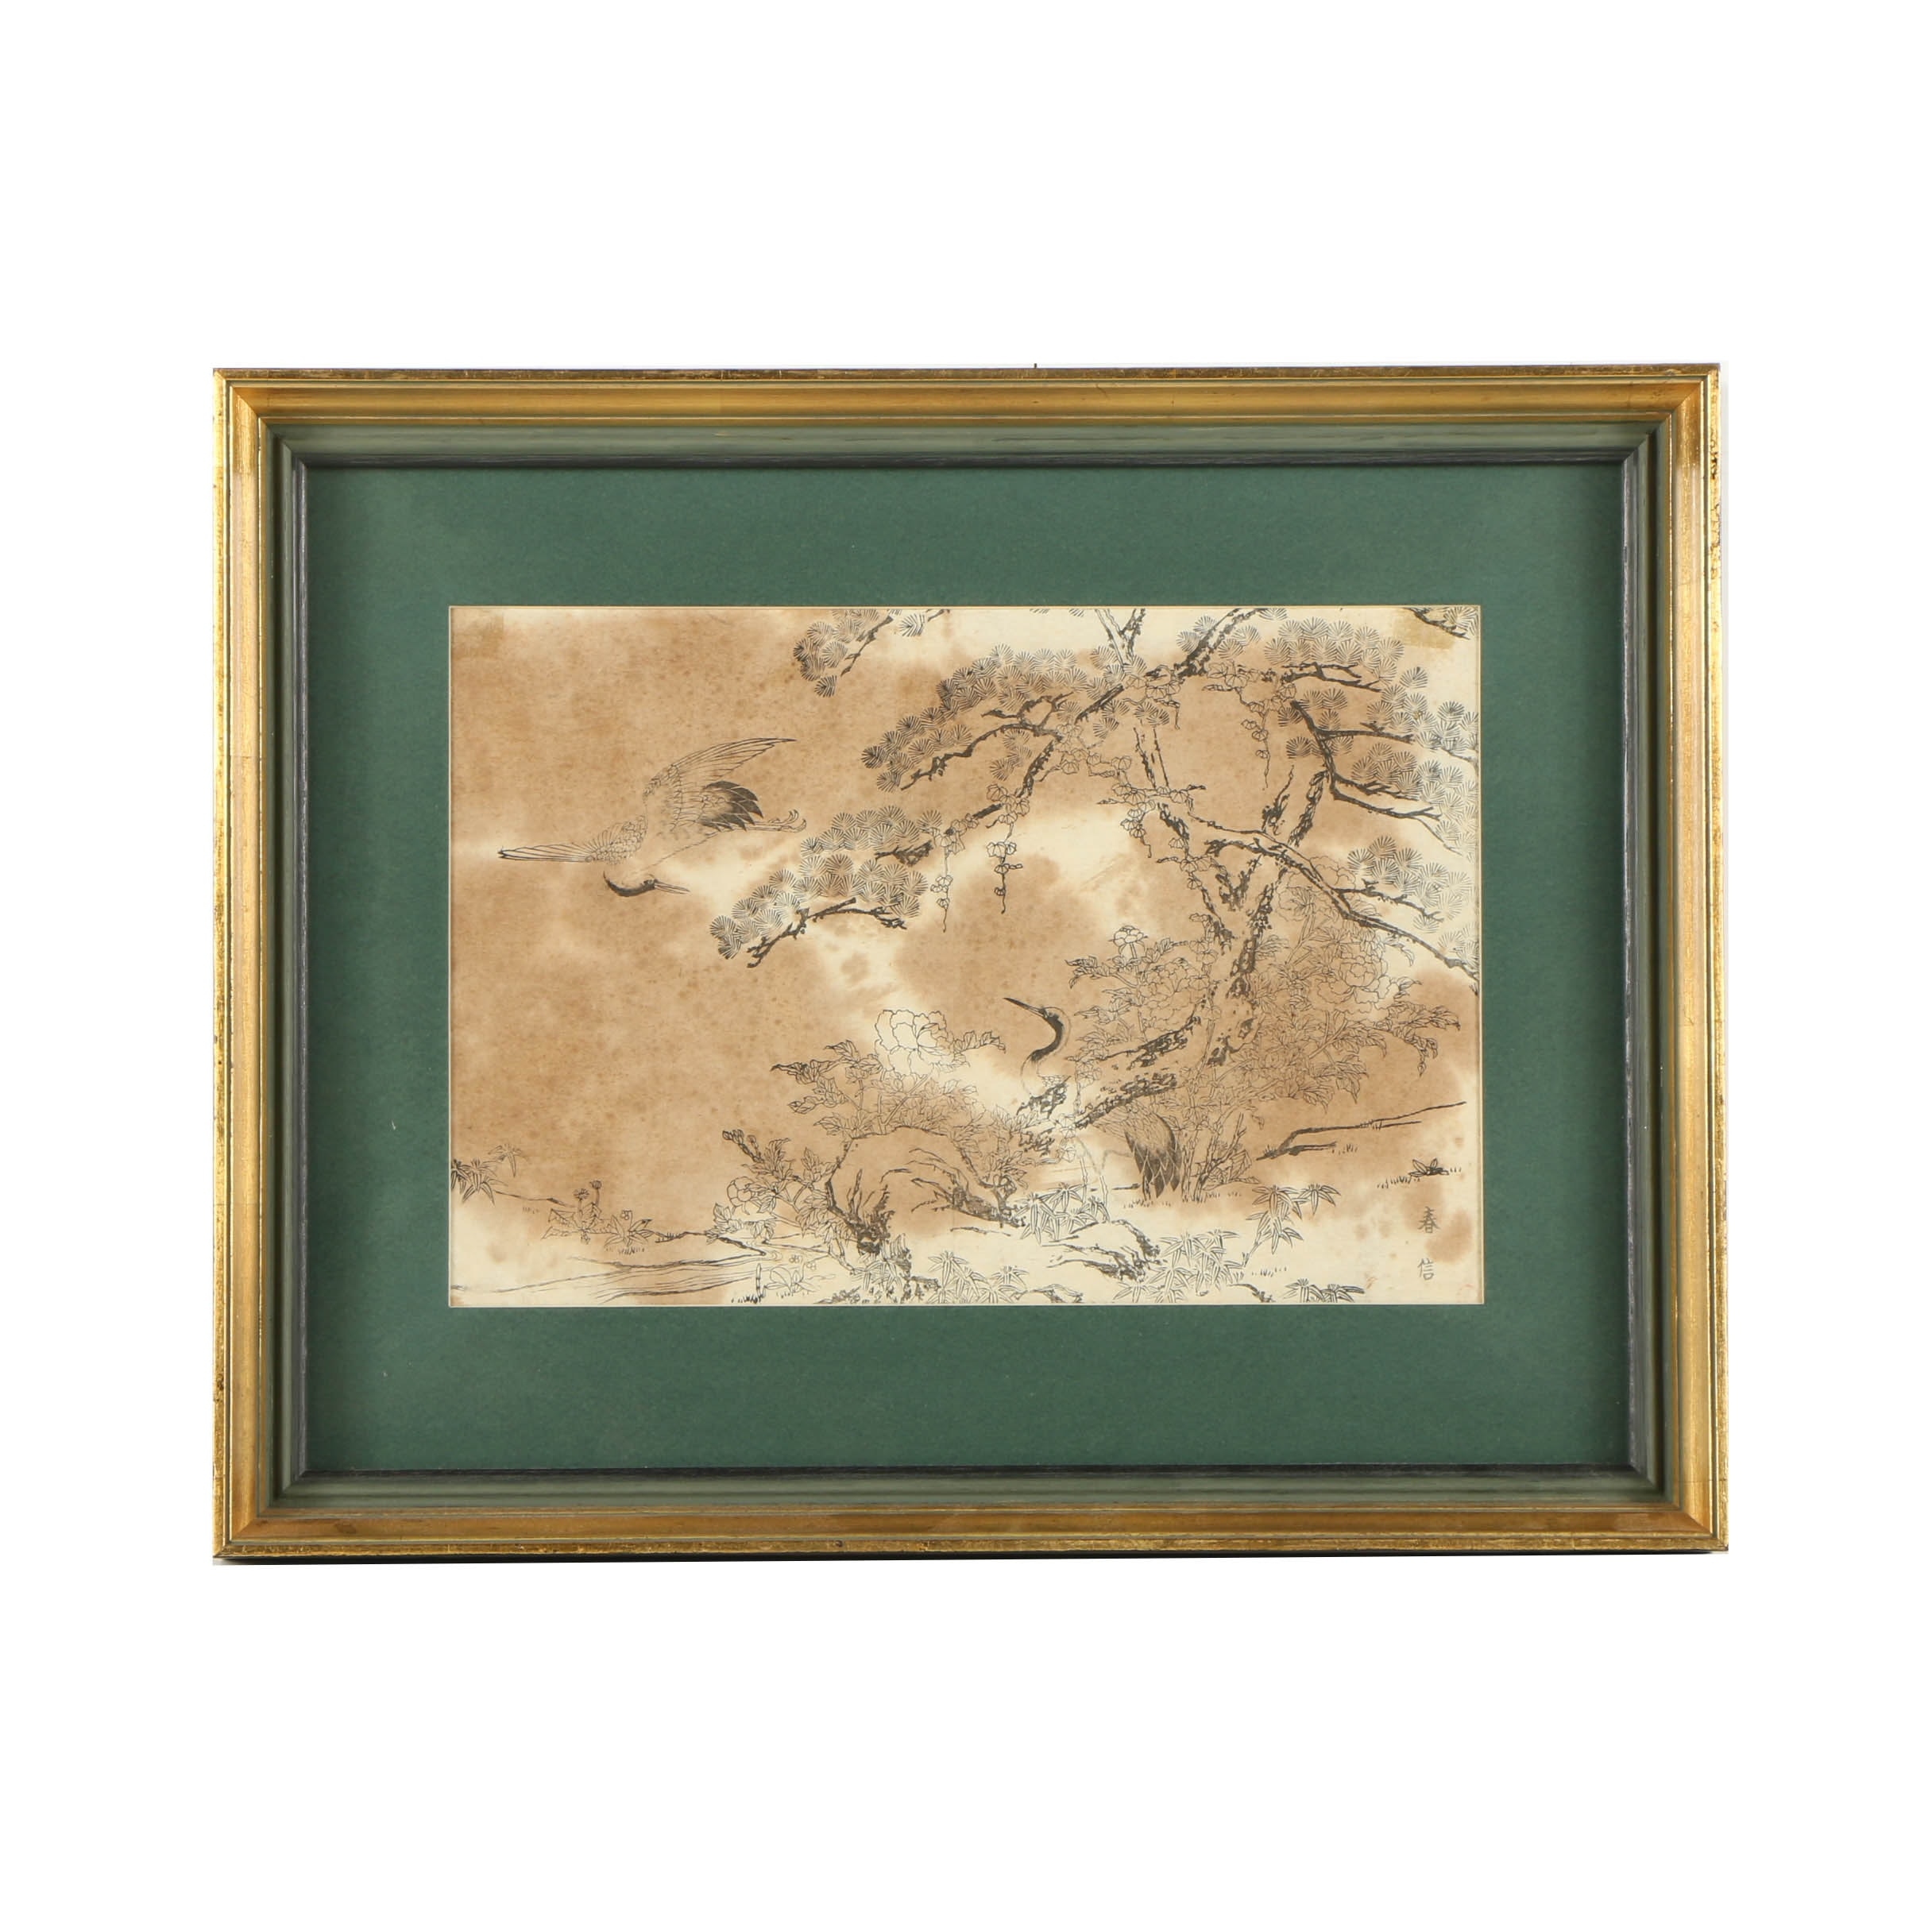 Japanese Woodblock on Paper with Cranes